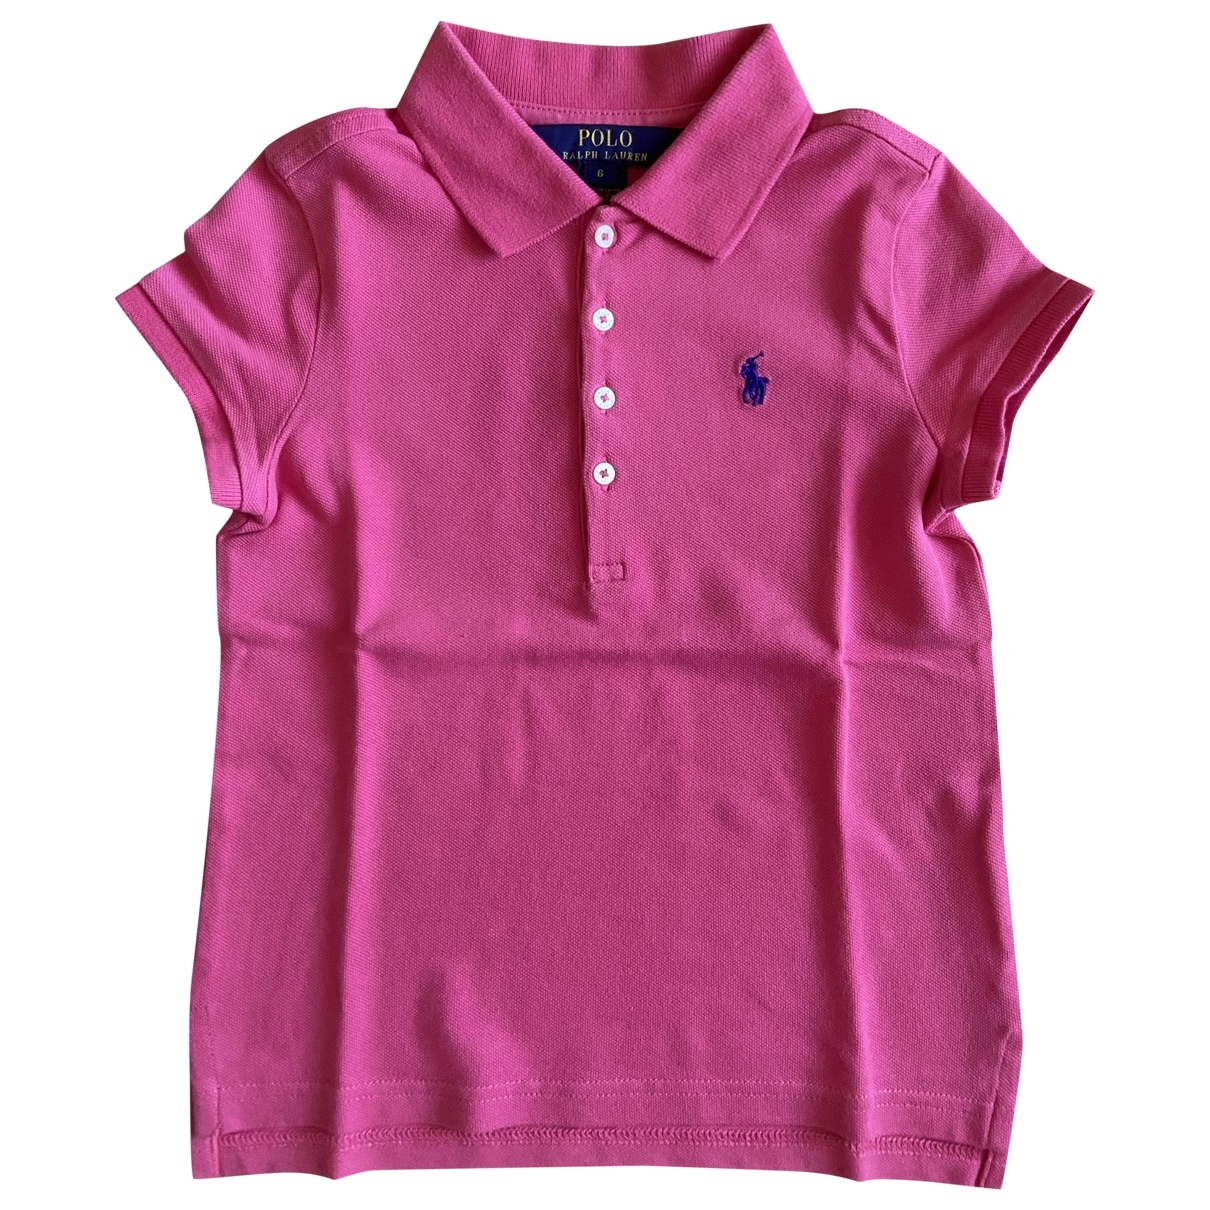 Polo Ralph Lauren \N Pink Cotton  top for Kids 6 years - up to 114cm FR